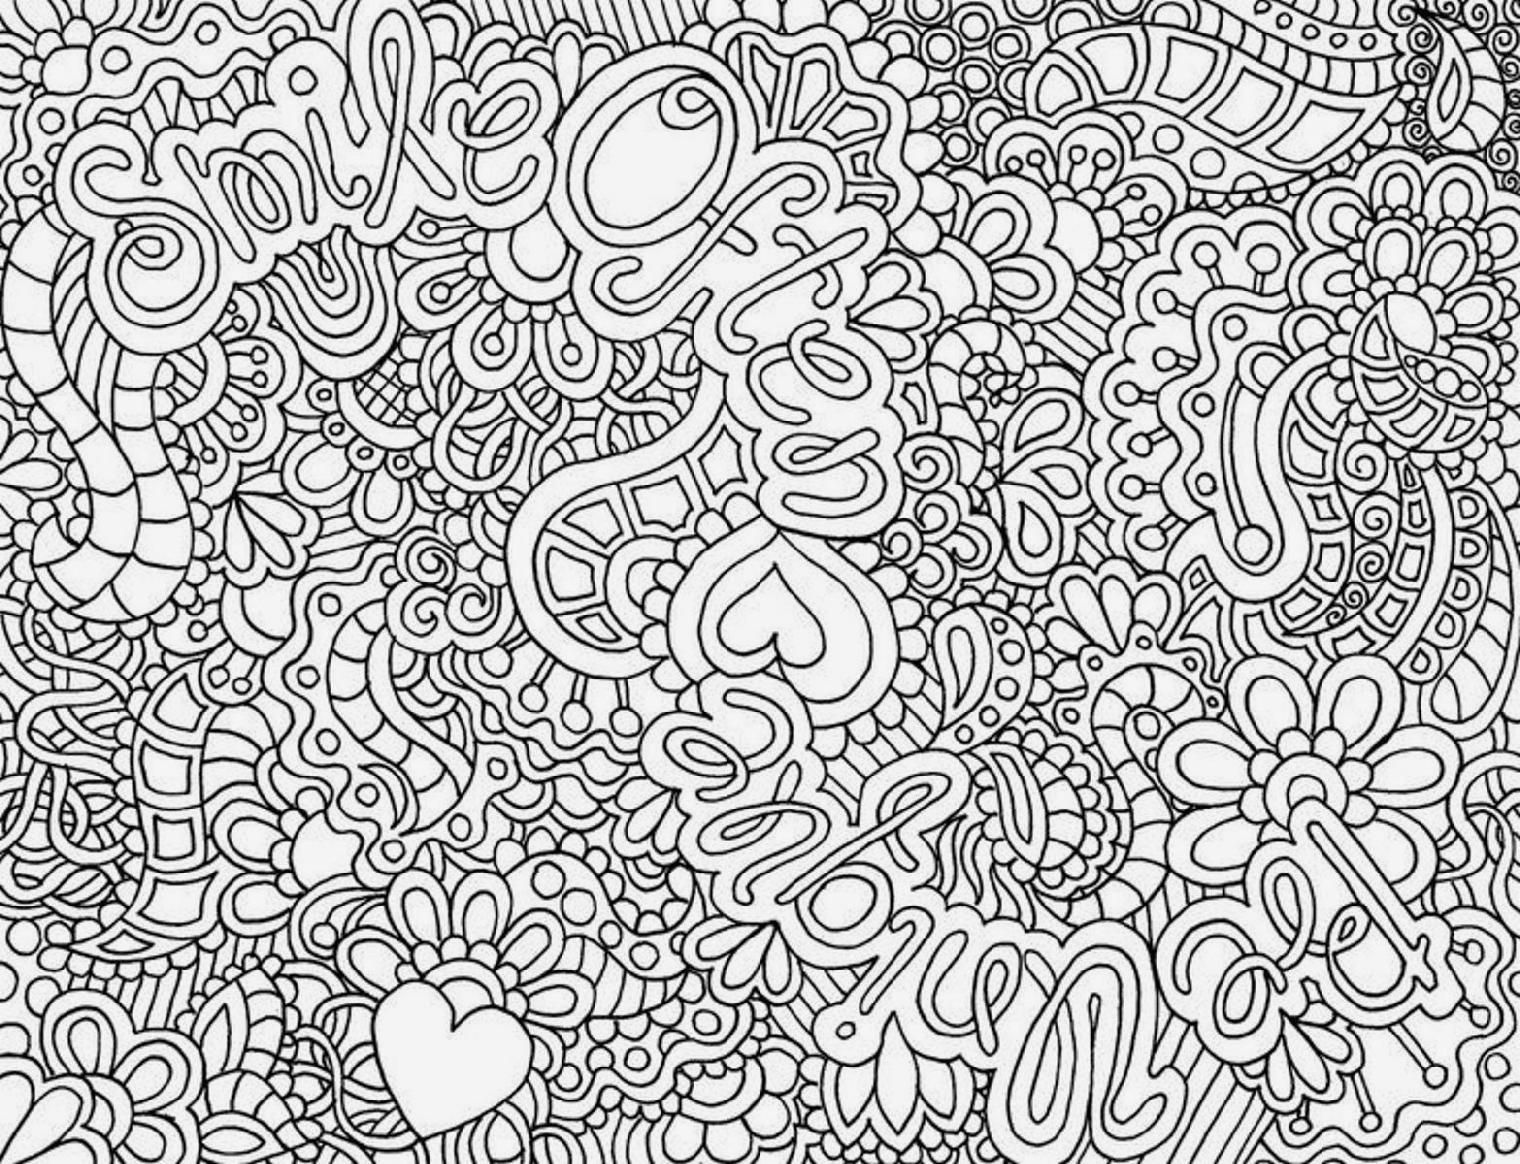 Free coloring pages for adults abstract - These Free Printable Coloring Book Pages Of Flowers Provide Hours Of Online And